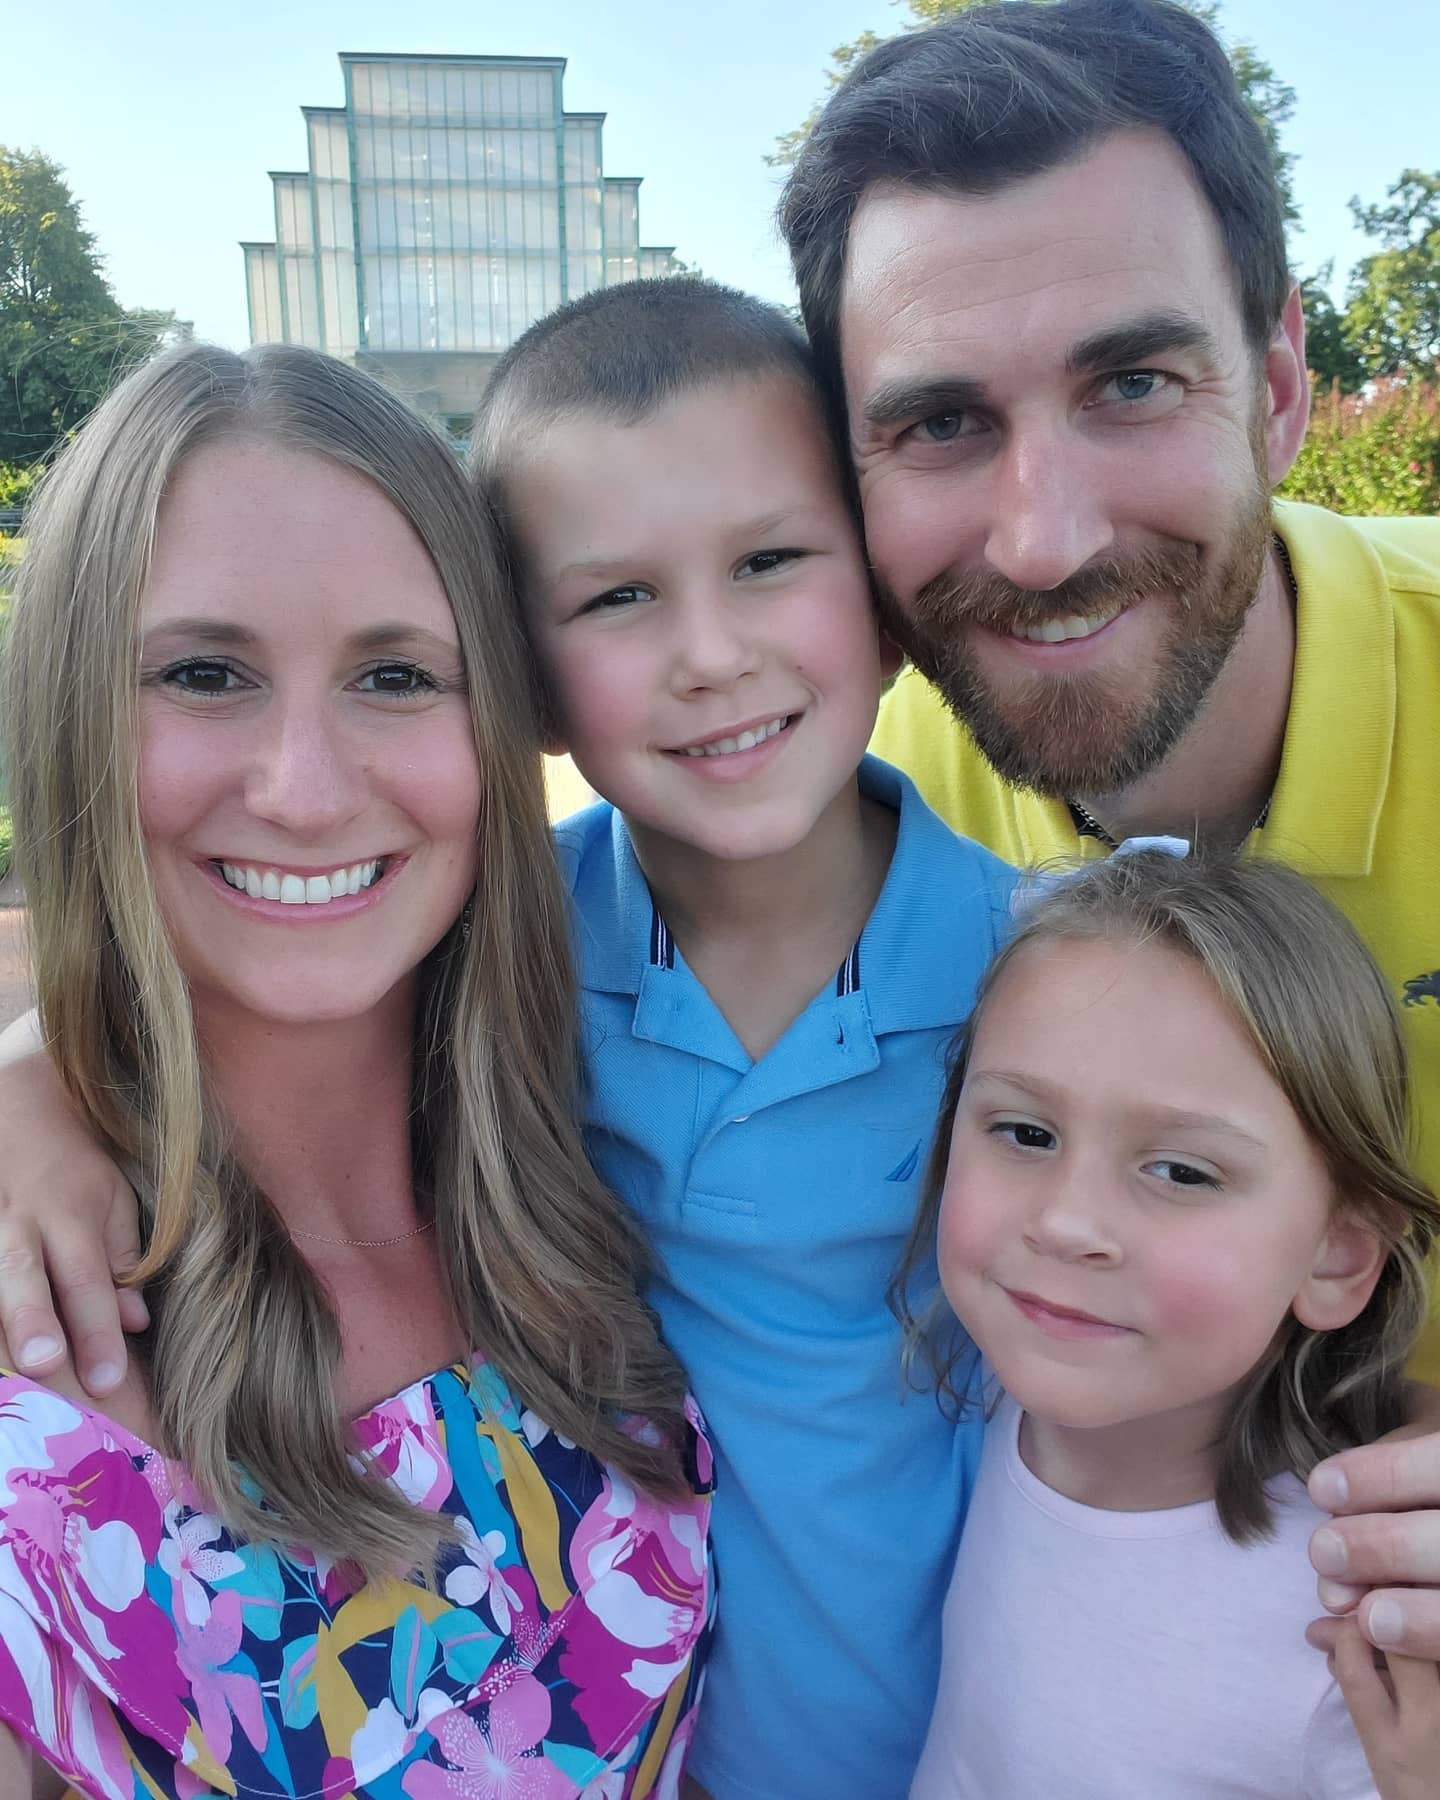 Heart Stories - Jessica Grib's PPCM Story - Jessica's family